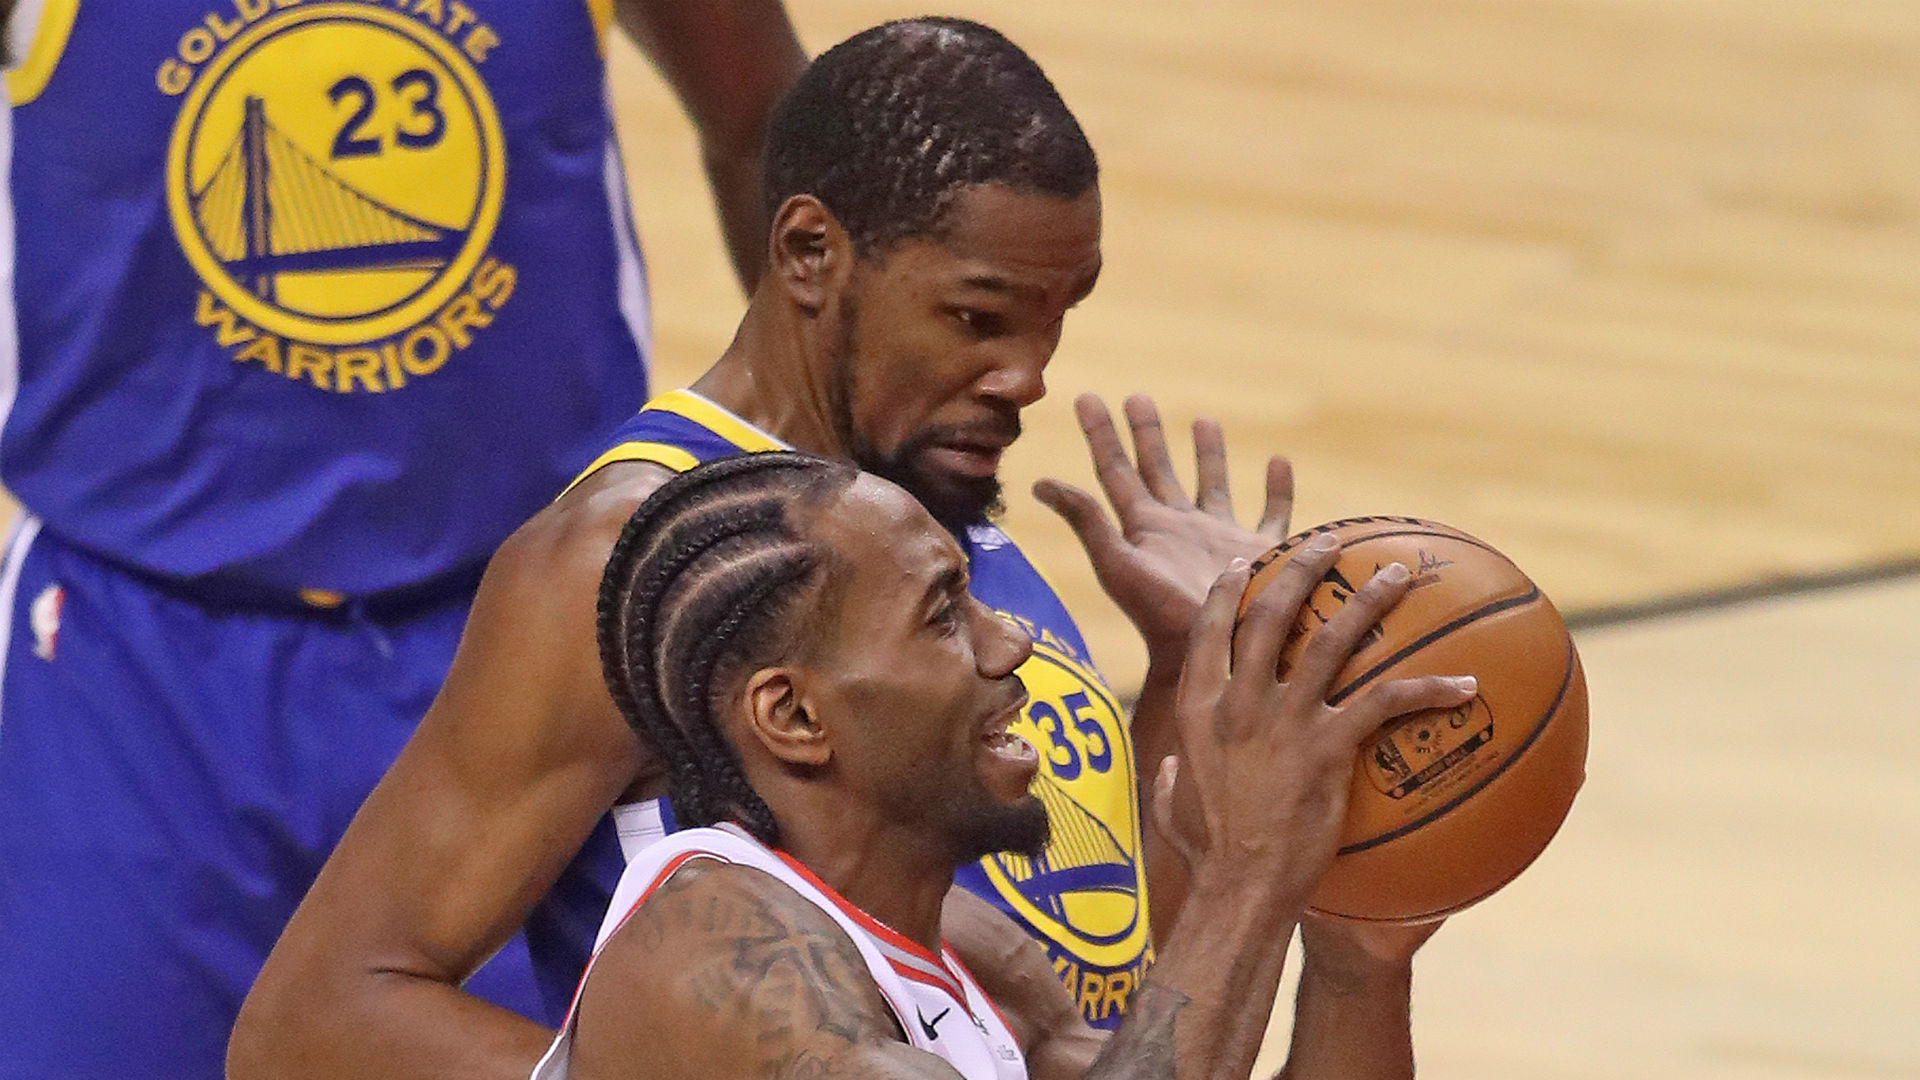 NBA free agency 2019: Kevin Durant to go? Kawhi Leonard to stay? What will Lakers do?